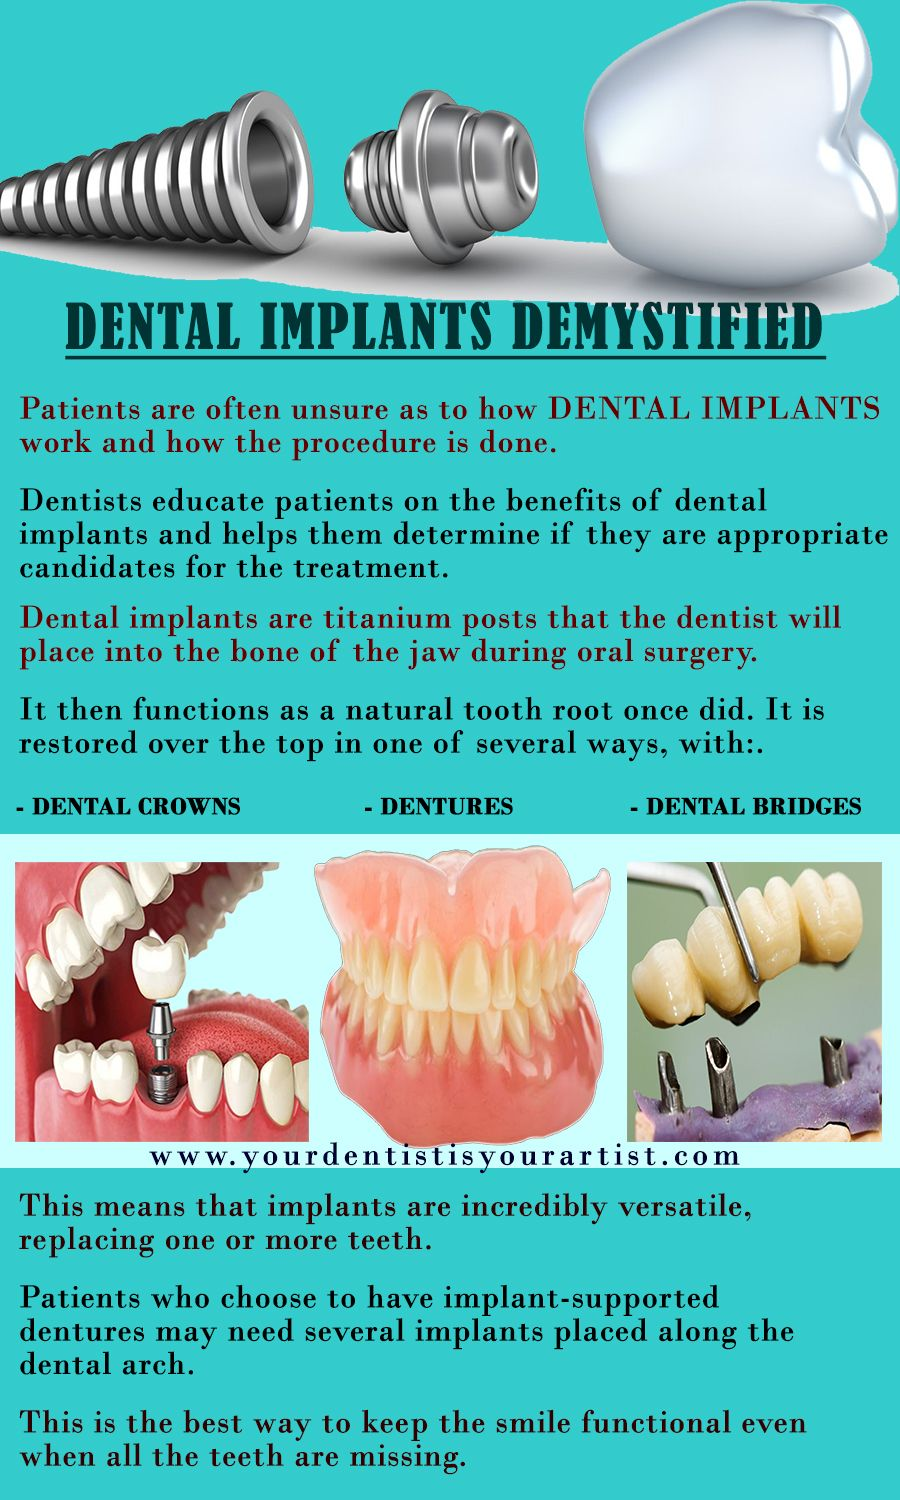 If You Are Interested In Visiting A Dentist Near Me In Brentwood Ca To Learn About How Dental Implants Dental Implants Affordable Dental Best Dental Implants